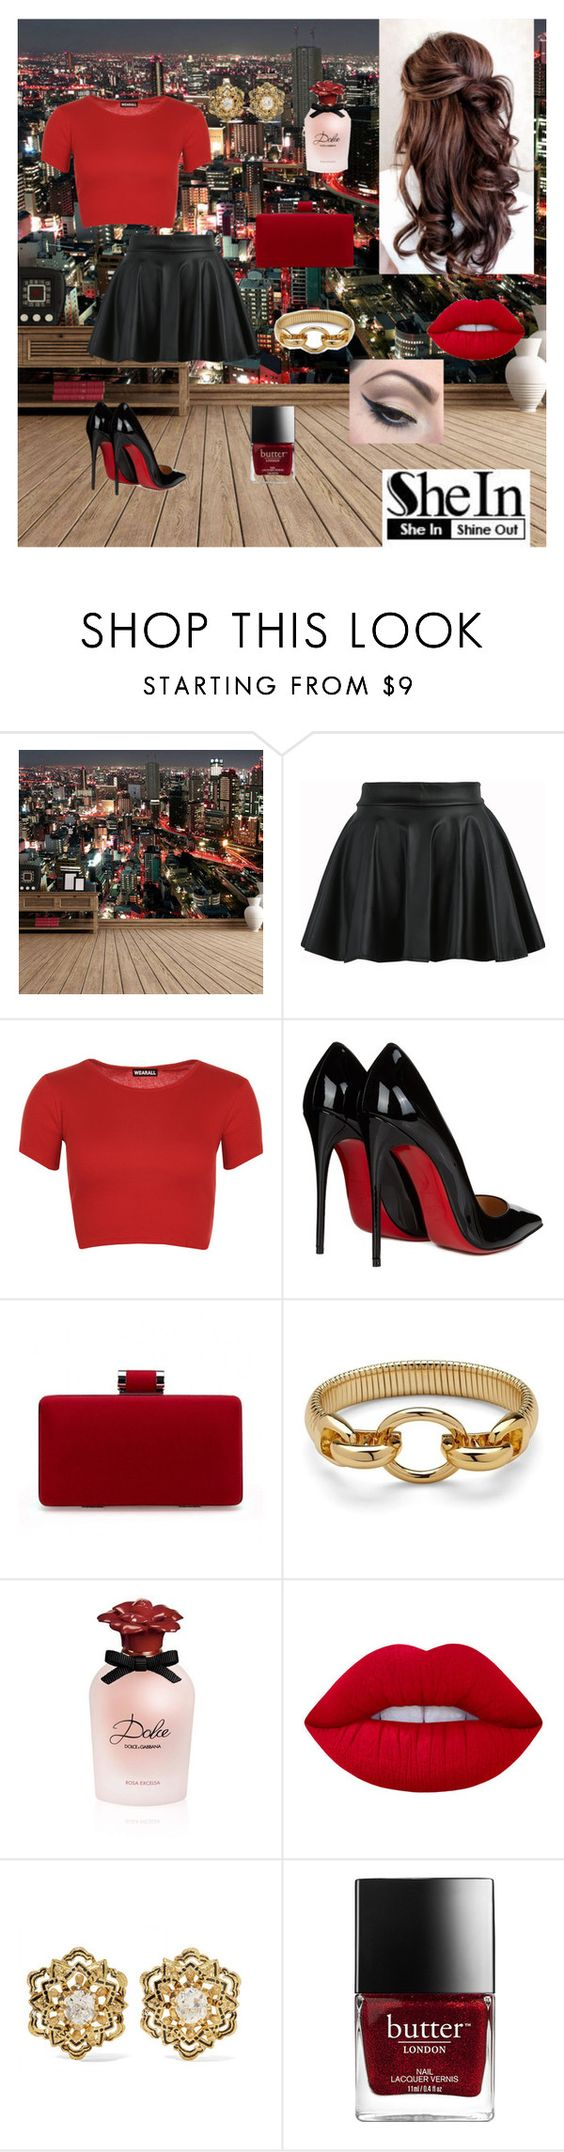 """Out on the town"" by acda ❤ liked on Polyvore featuring WithChic, WearAll, Christian Louboutin, Diane Von Furstenberg, Dolce&Gabbana, Lime Crime, Fred Leighton and Mehron"